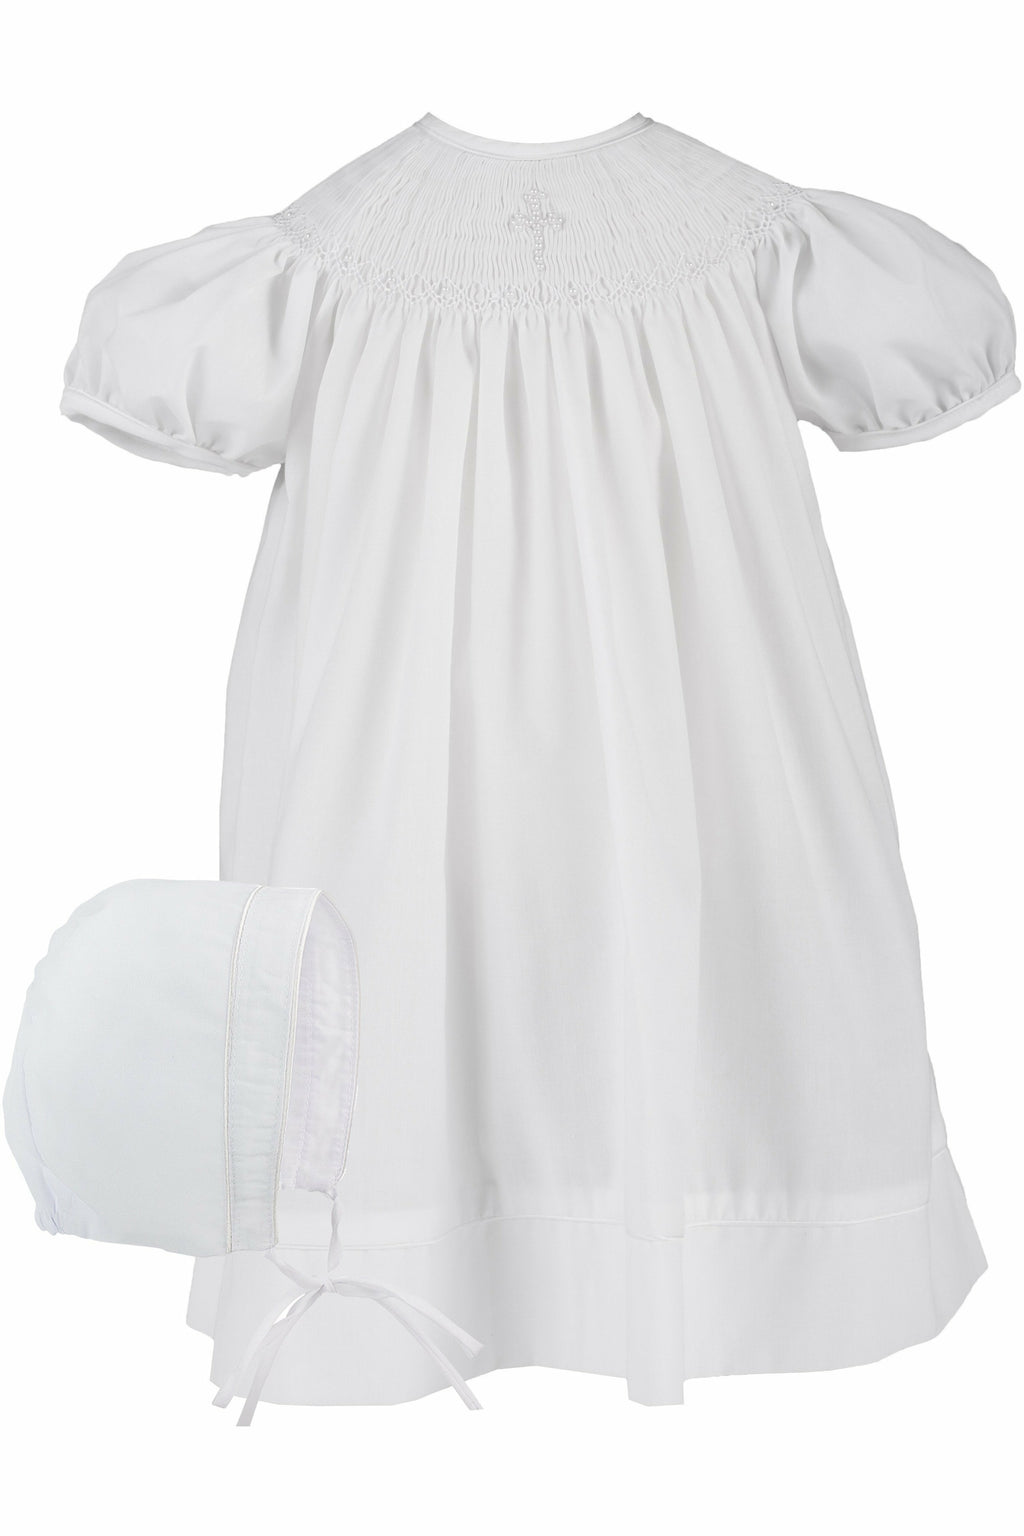 Baby Girl Hand Smocked Christening/Baptism Pearl Cross Bishop Dress with Bonnet - White